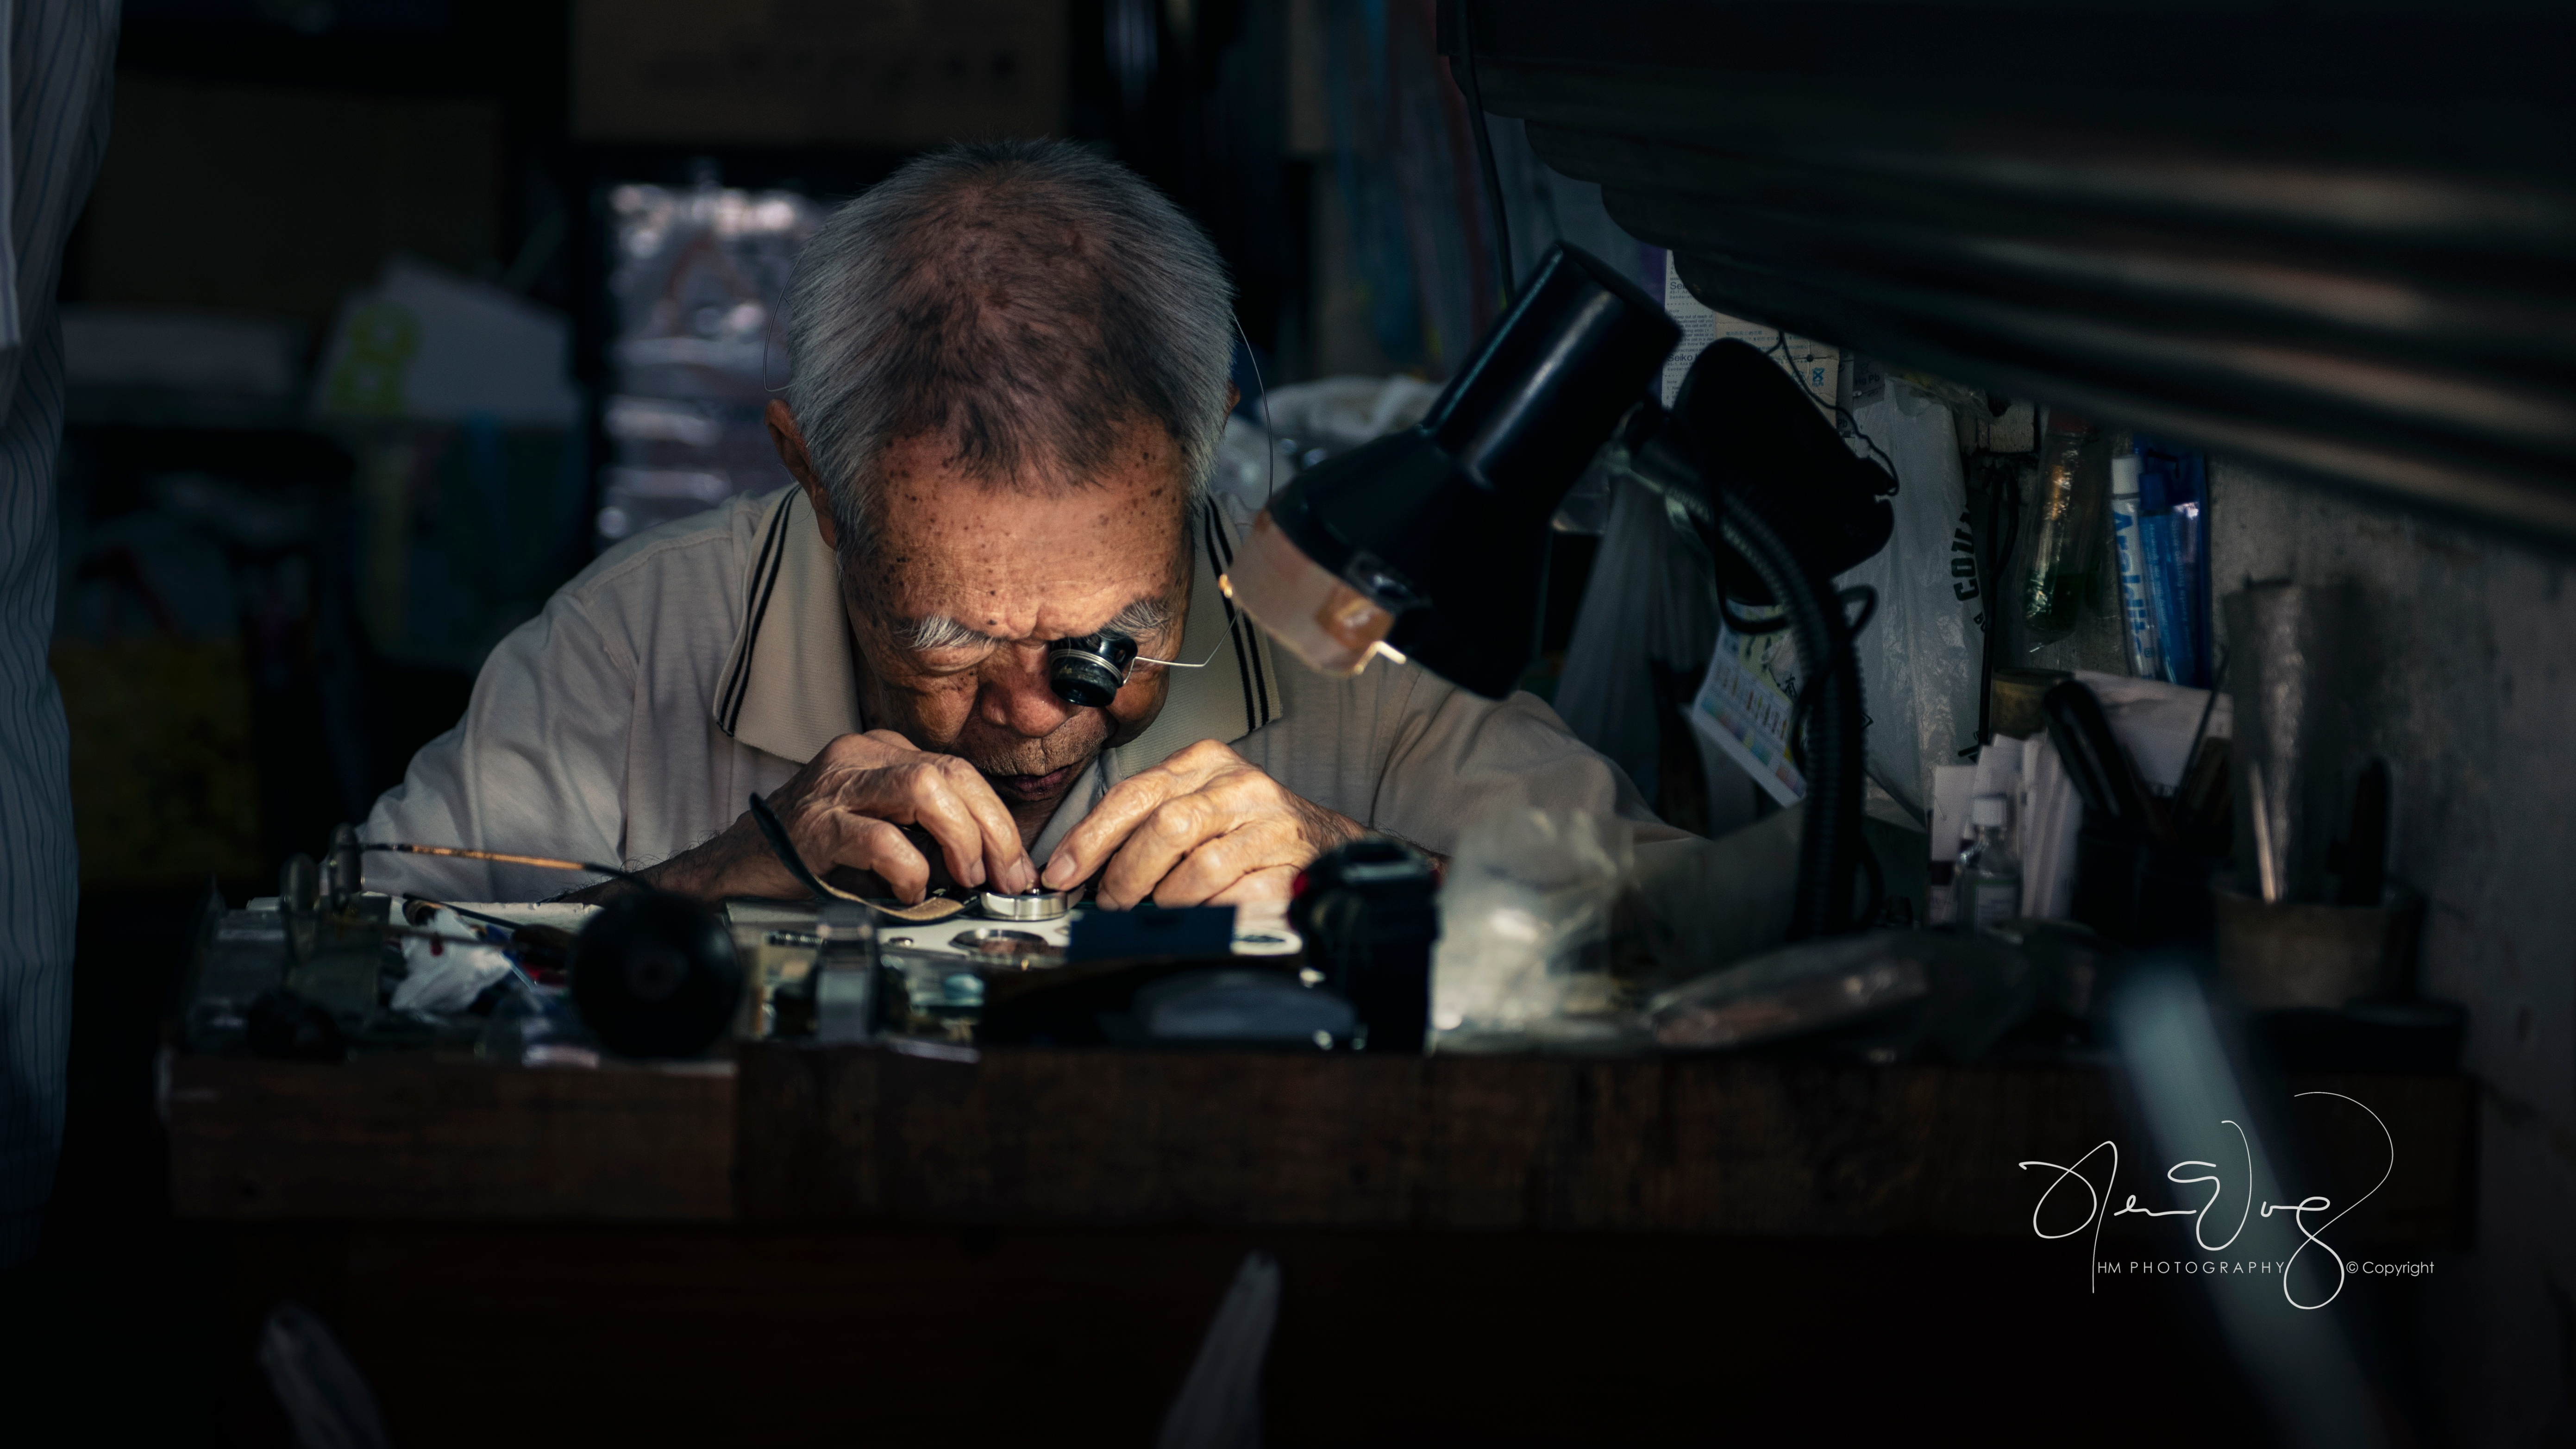 A horologist hard at work making a watch by hand